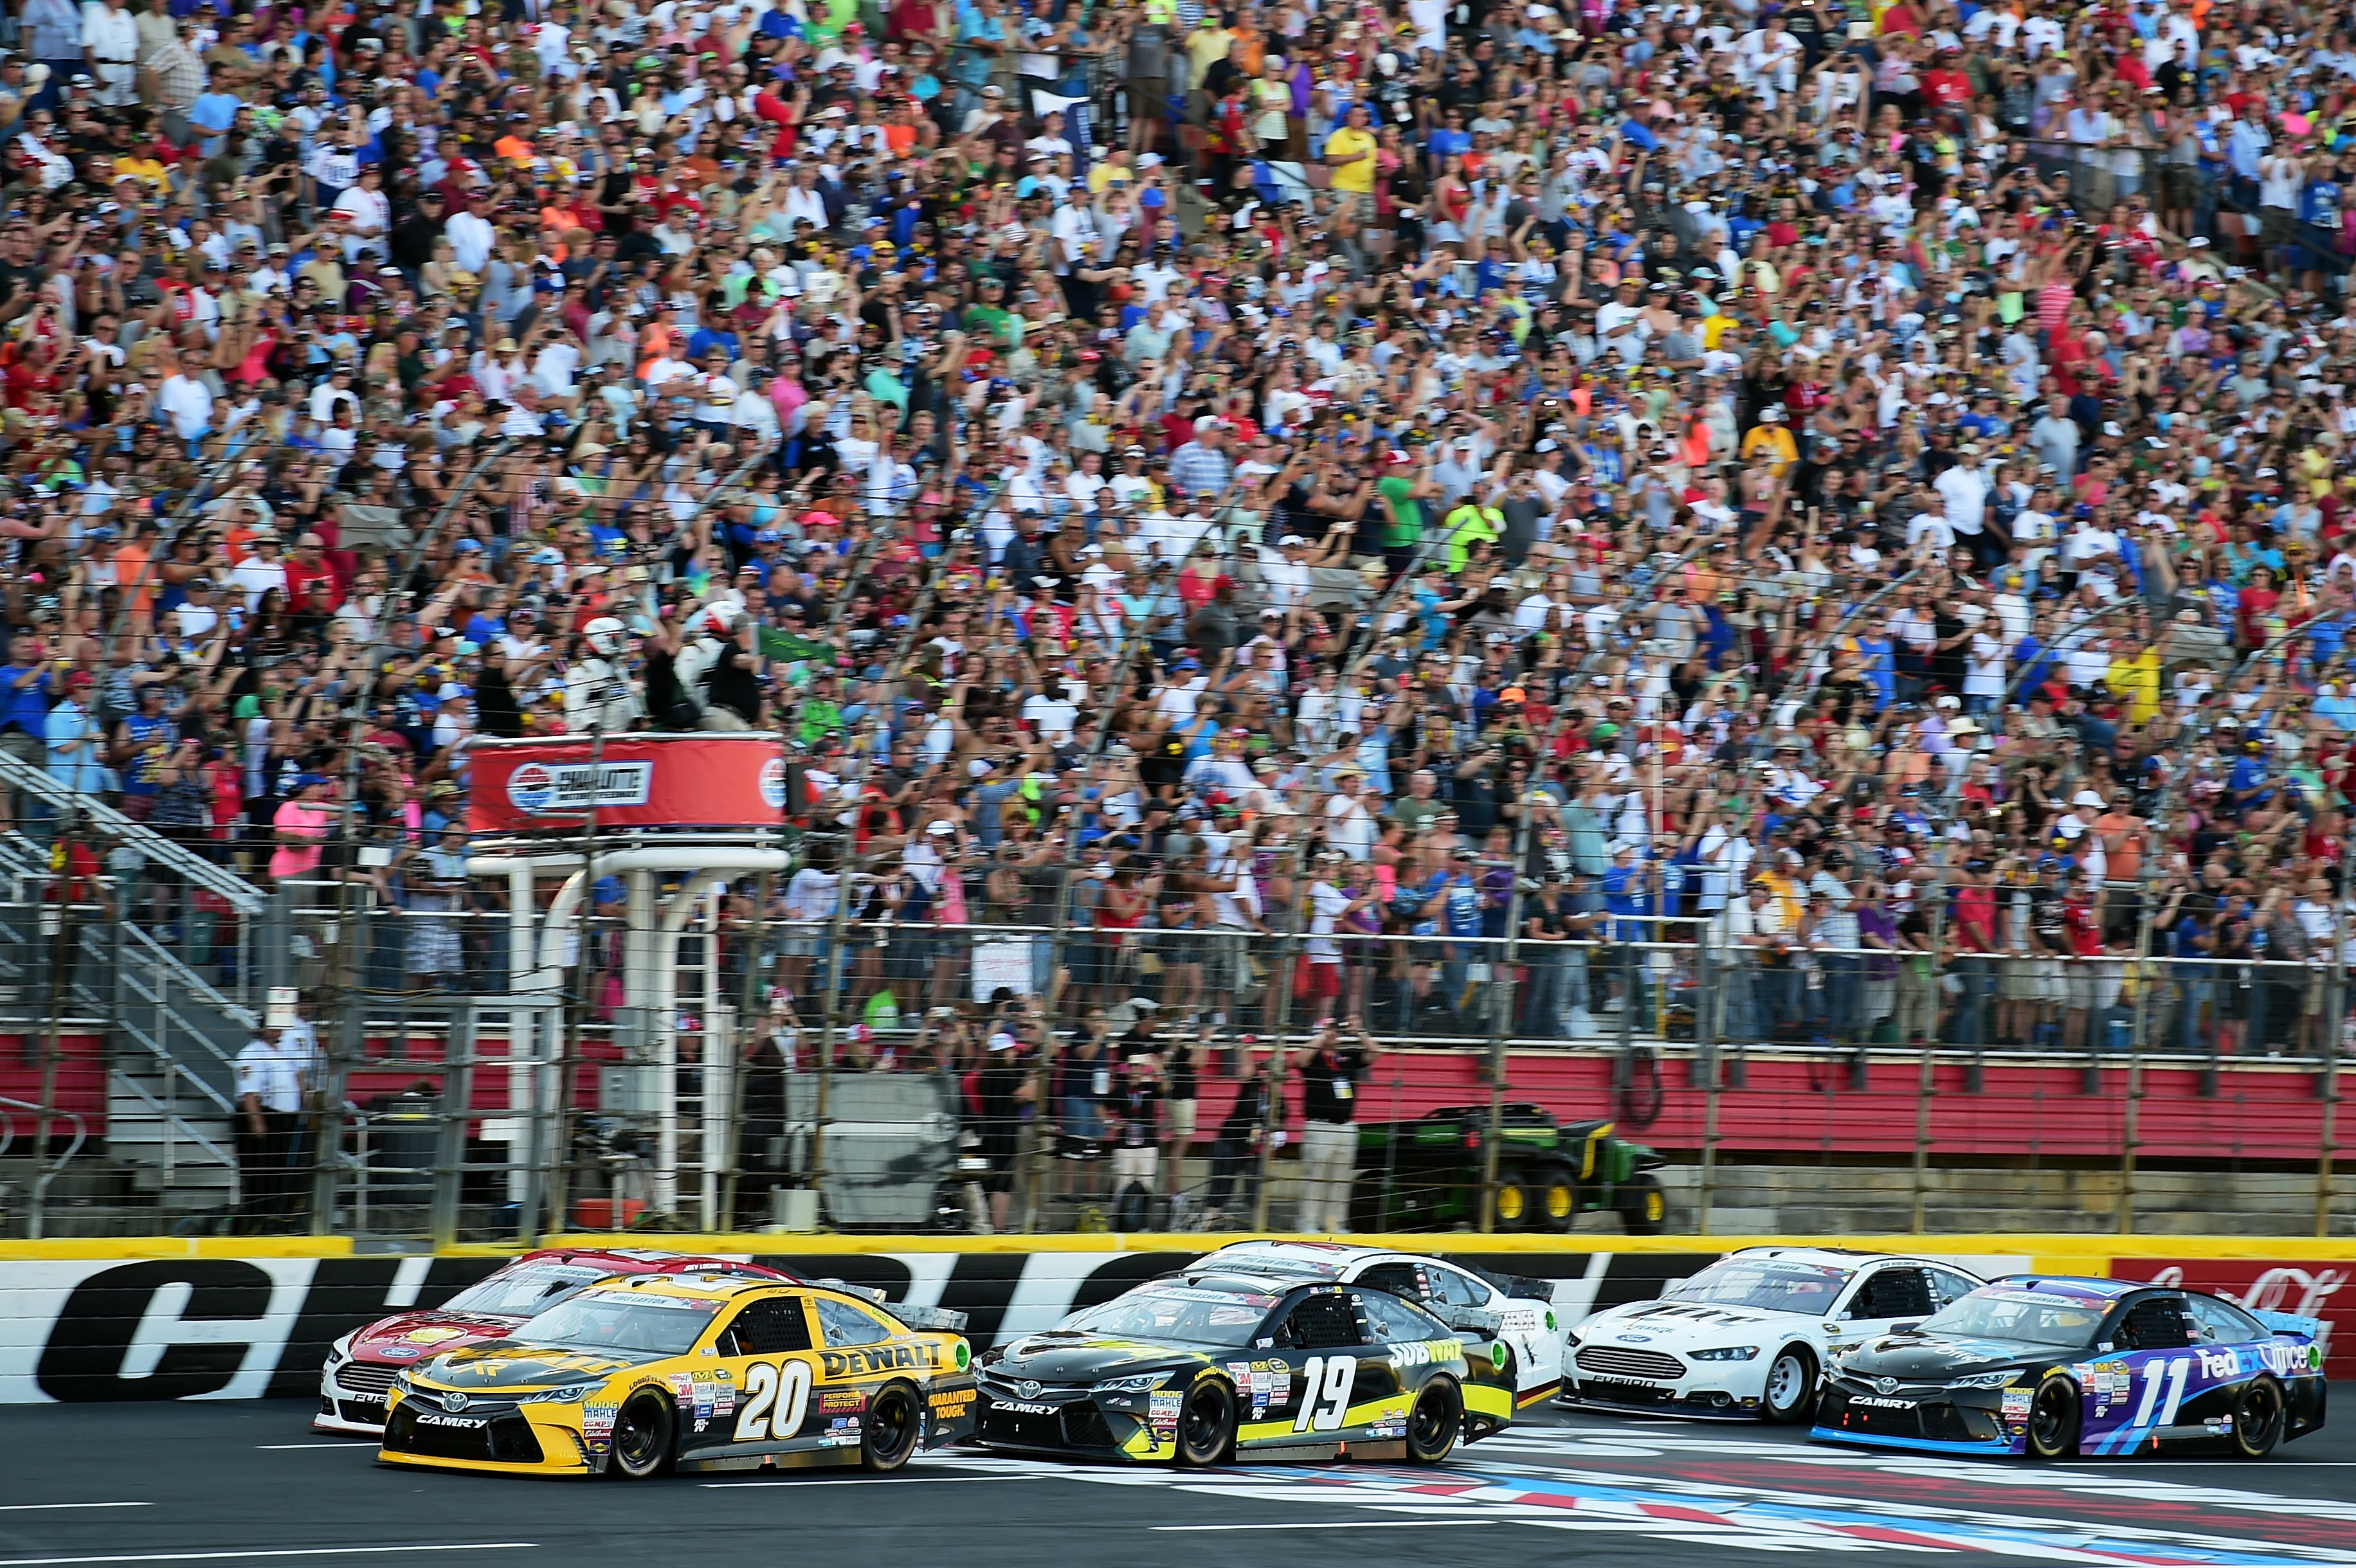 Three NASCAR Sprint Cup Series Teams Receive Penalties From Event At Charlotte Motor Speedway